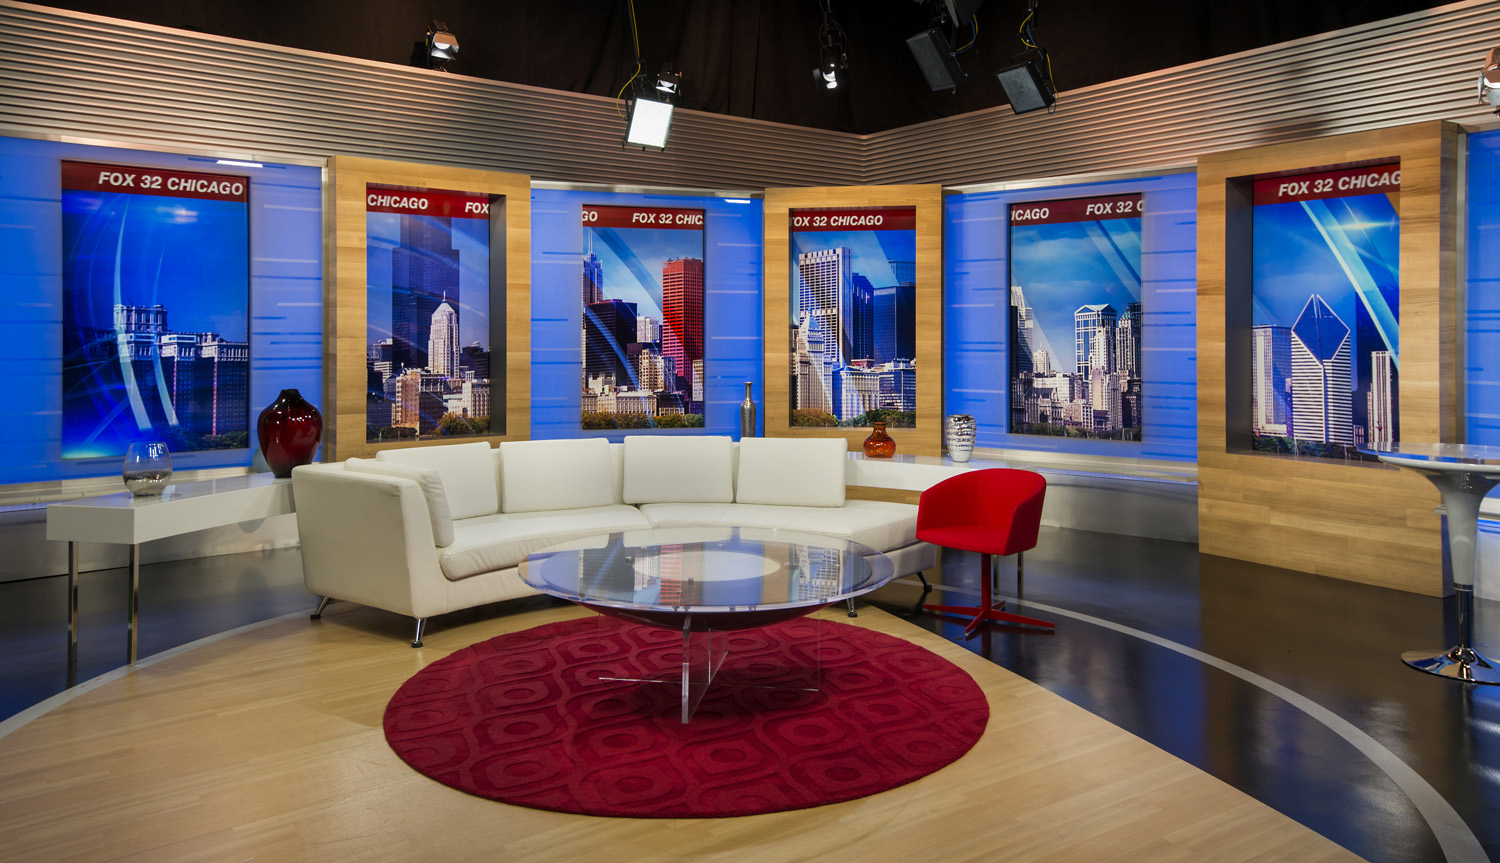 ncs_fox-chicago-wfld-tv-studio_0003